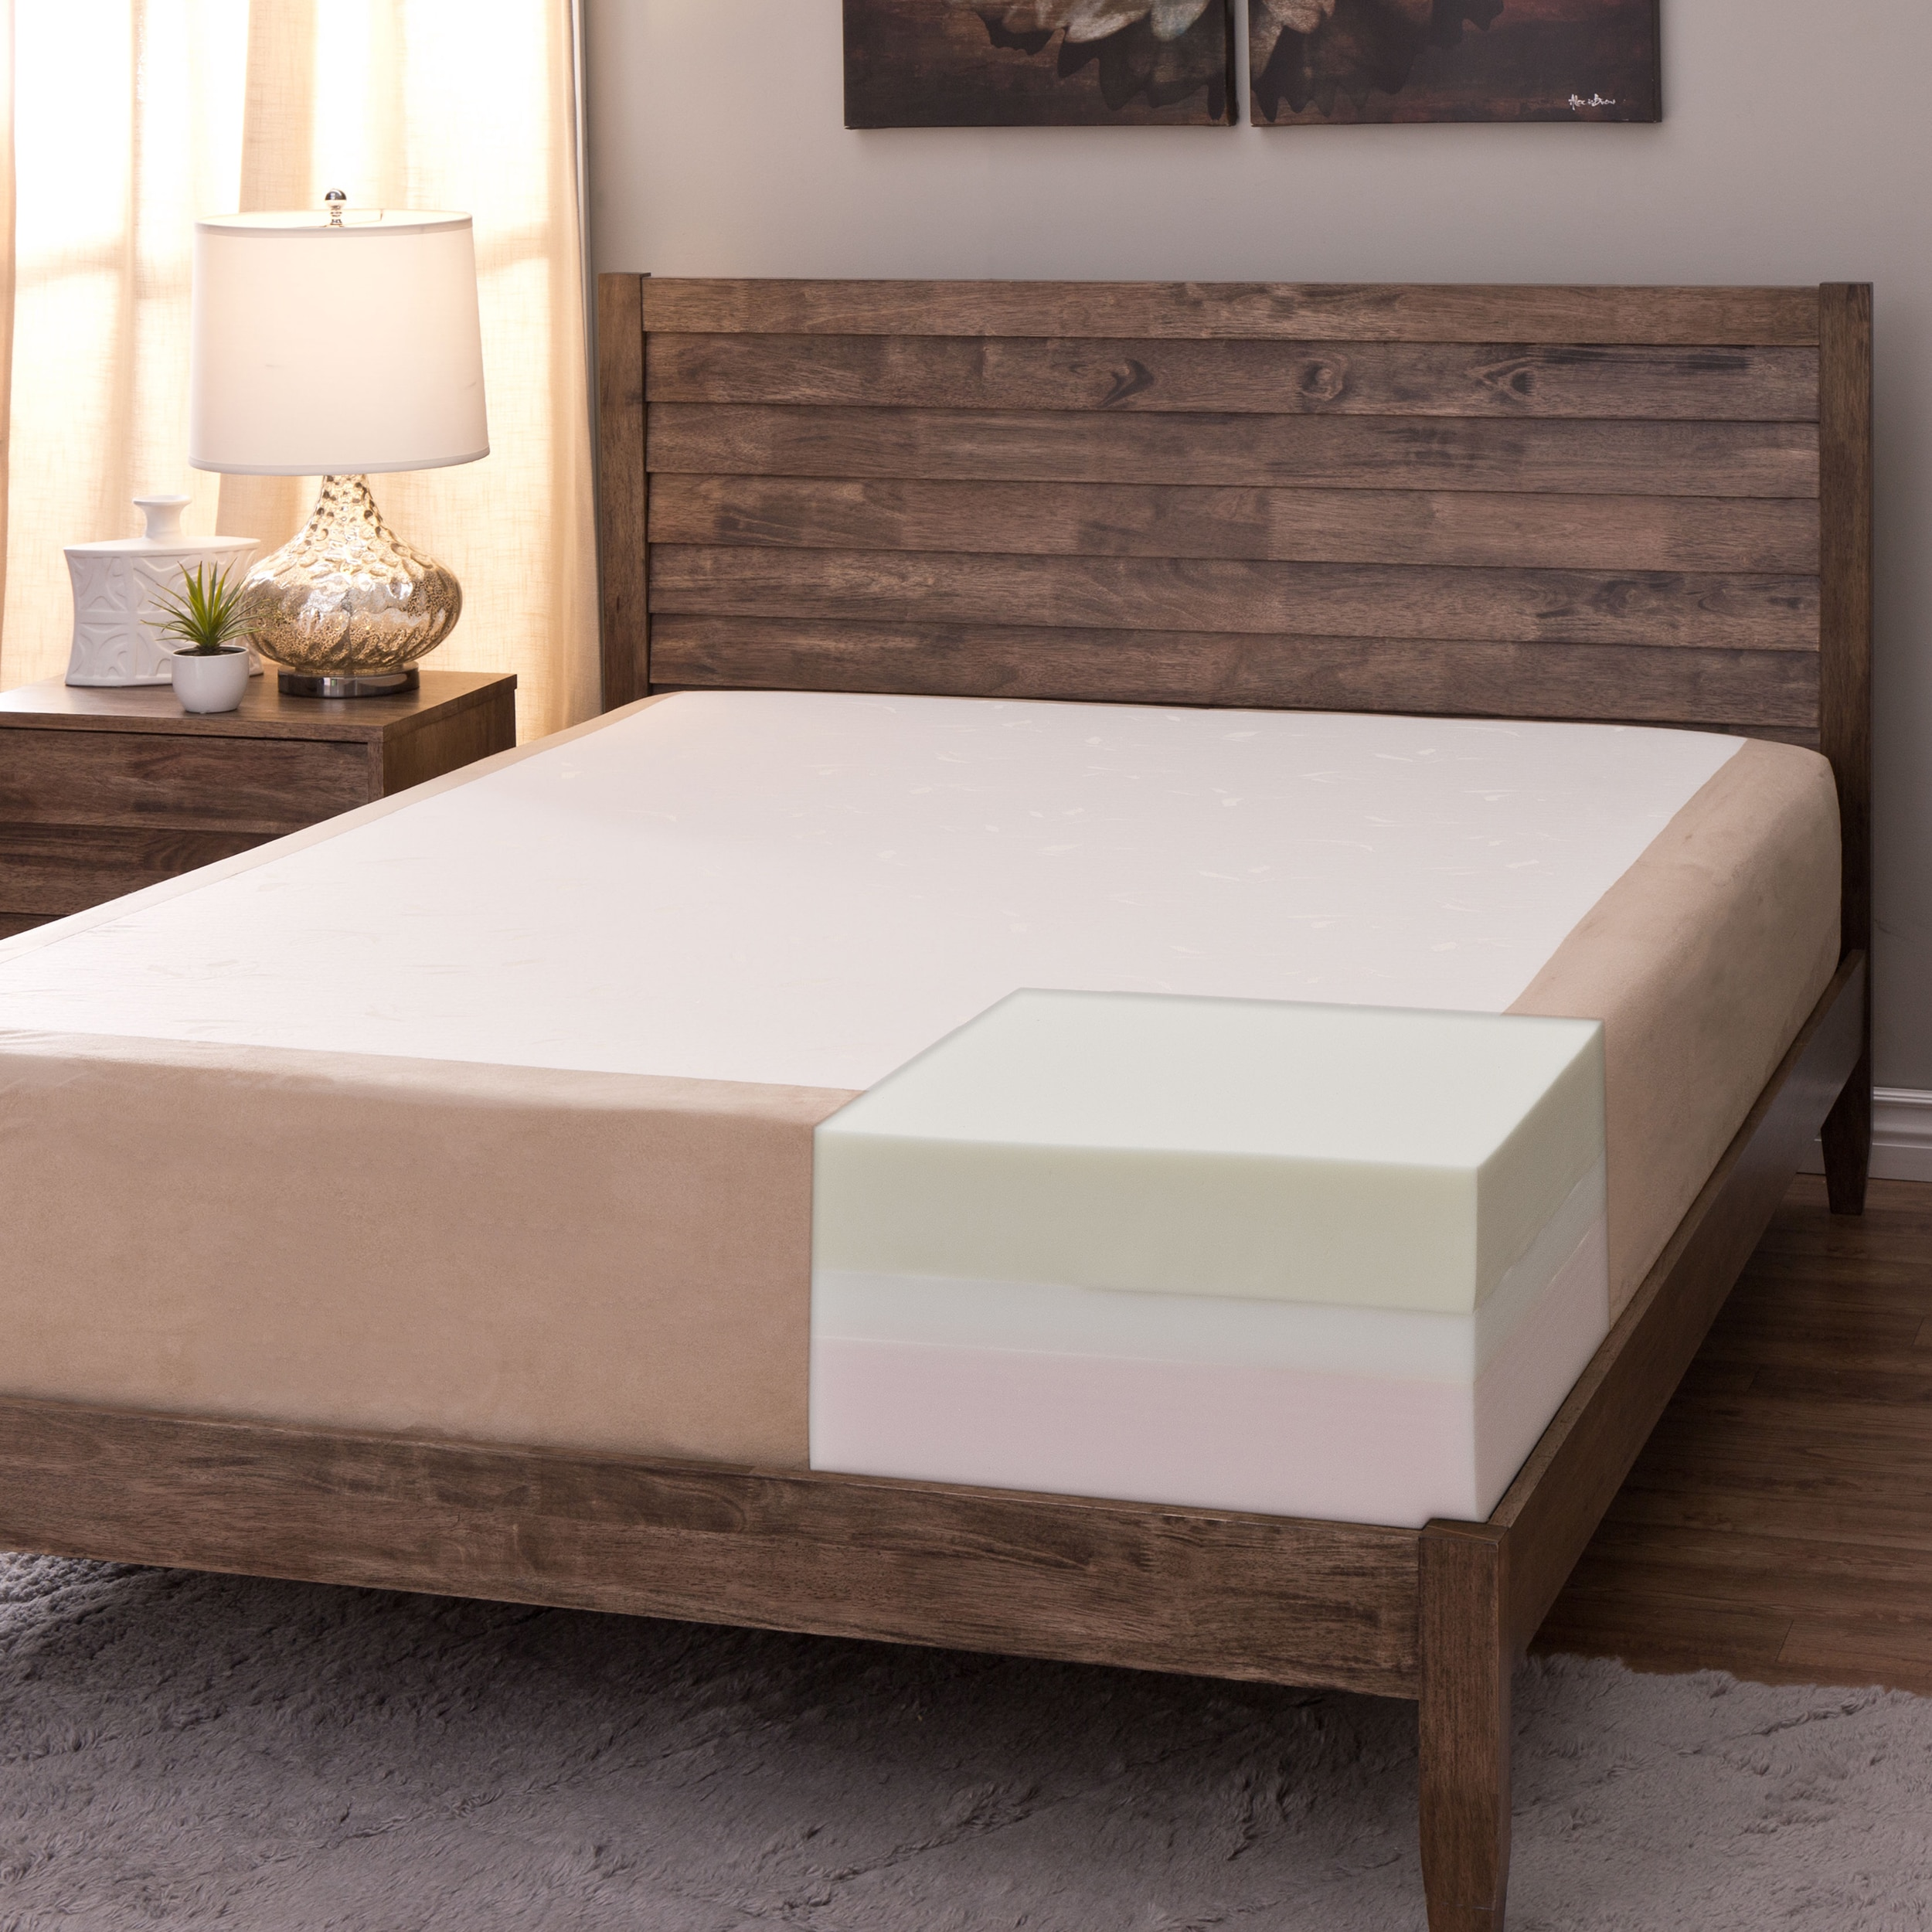 slumber king mattress solutions your comfort size twin memory choose pin foam inch